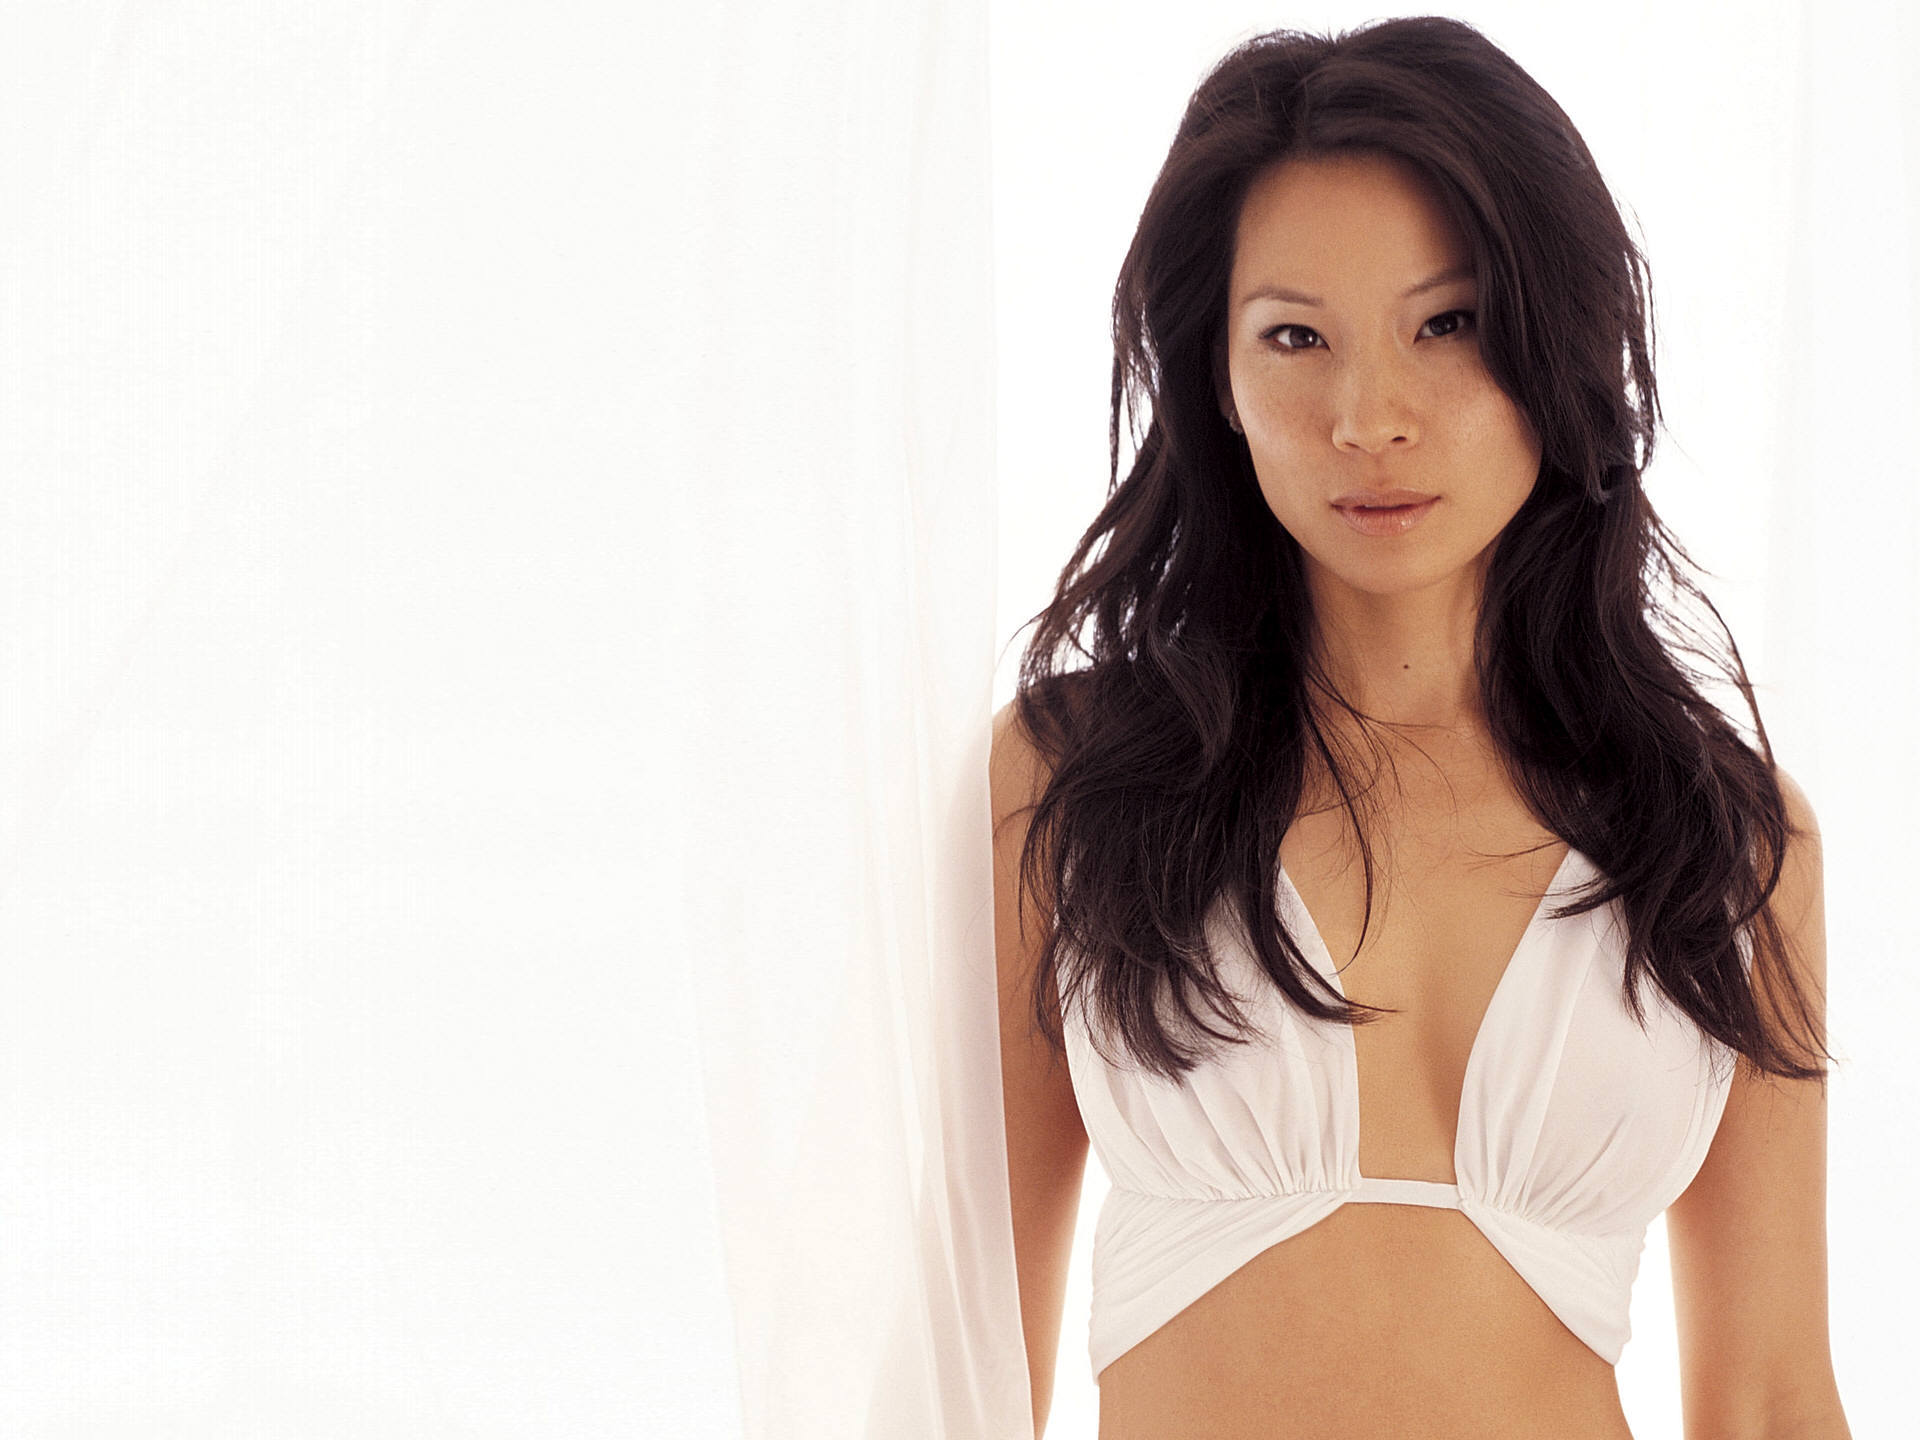 lucy liu free wallpaper - photo #23